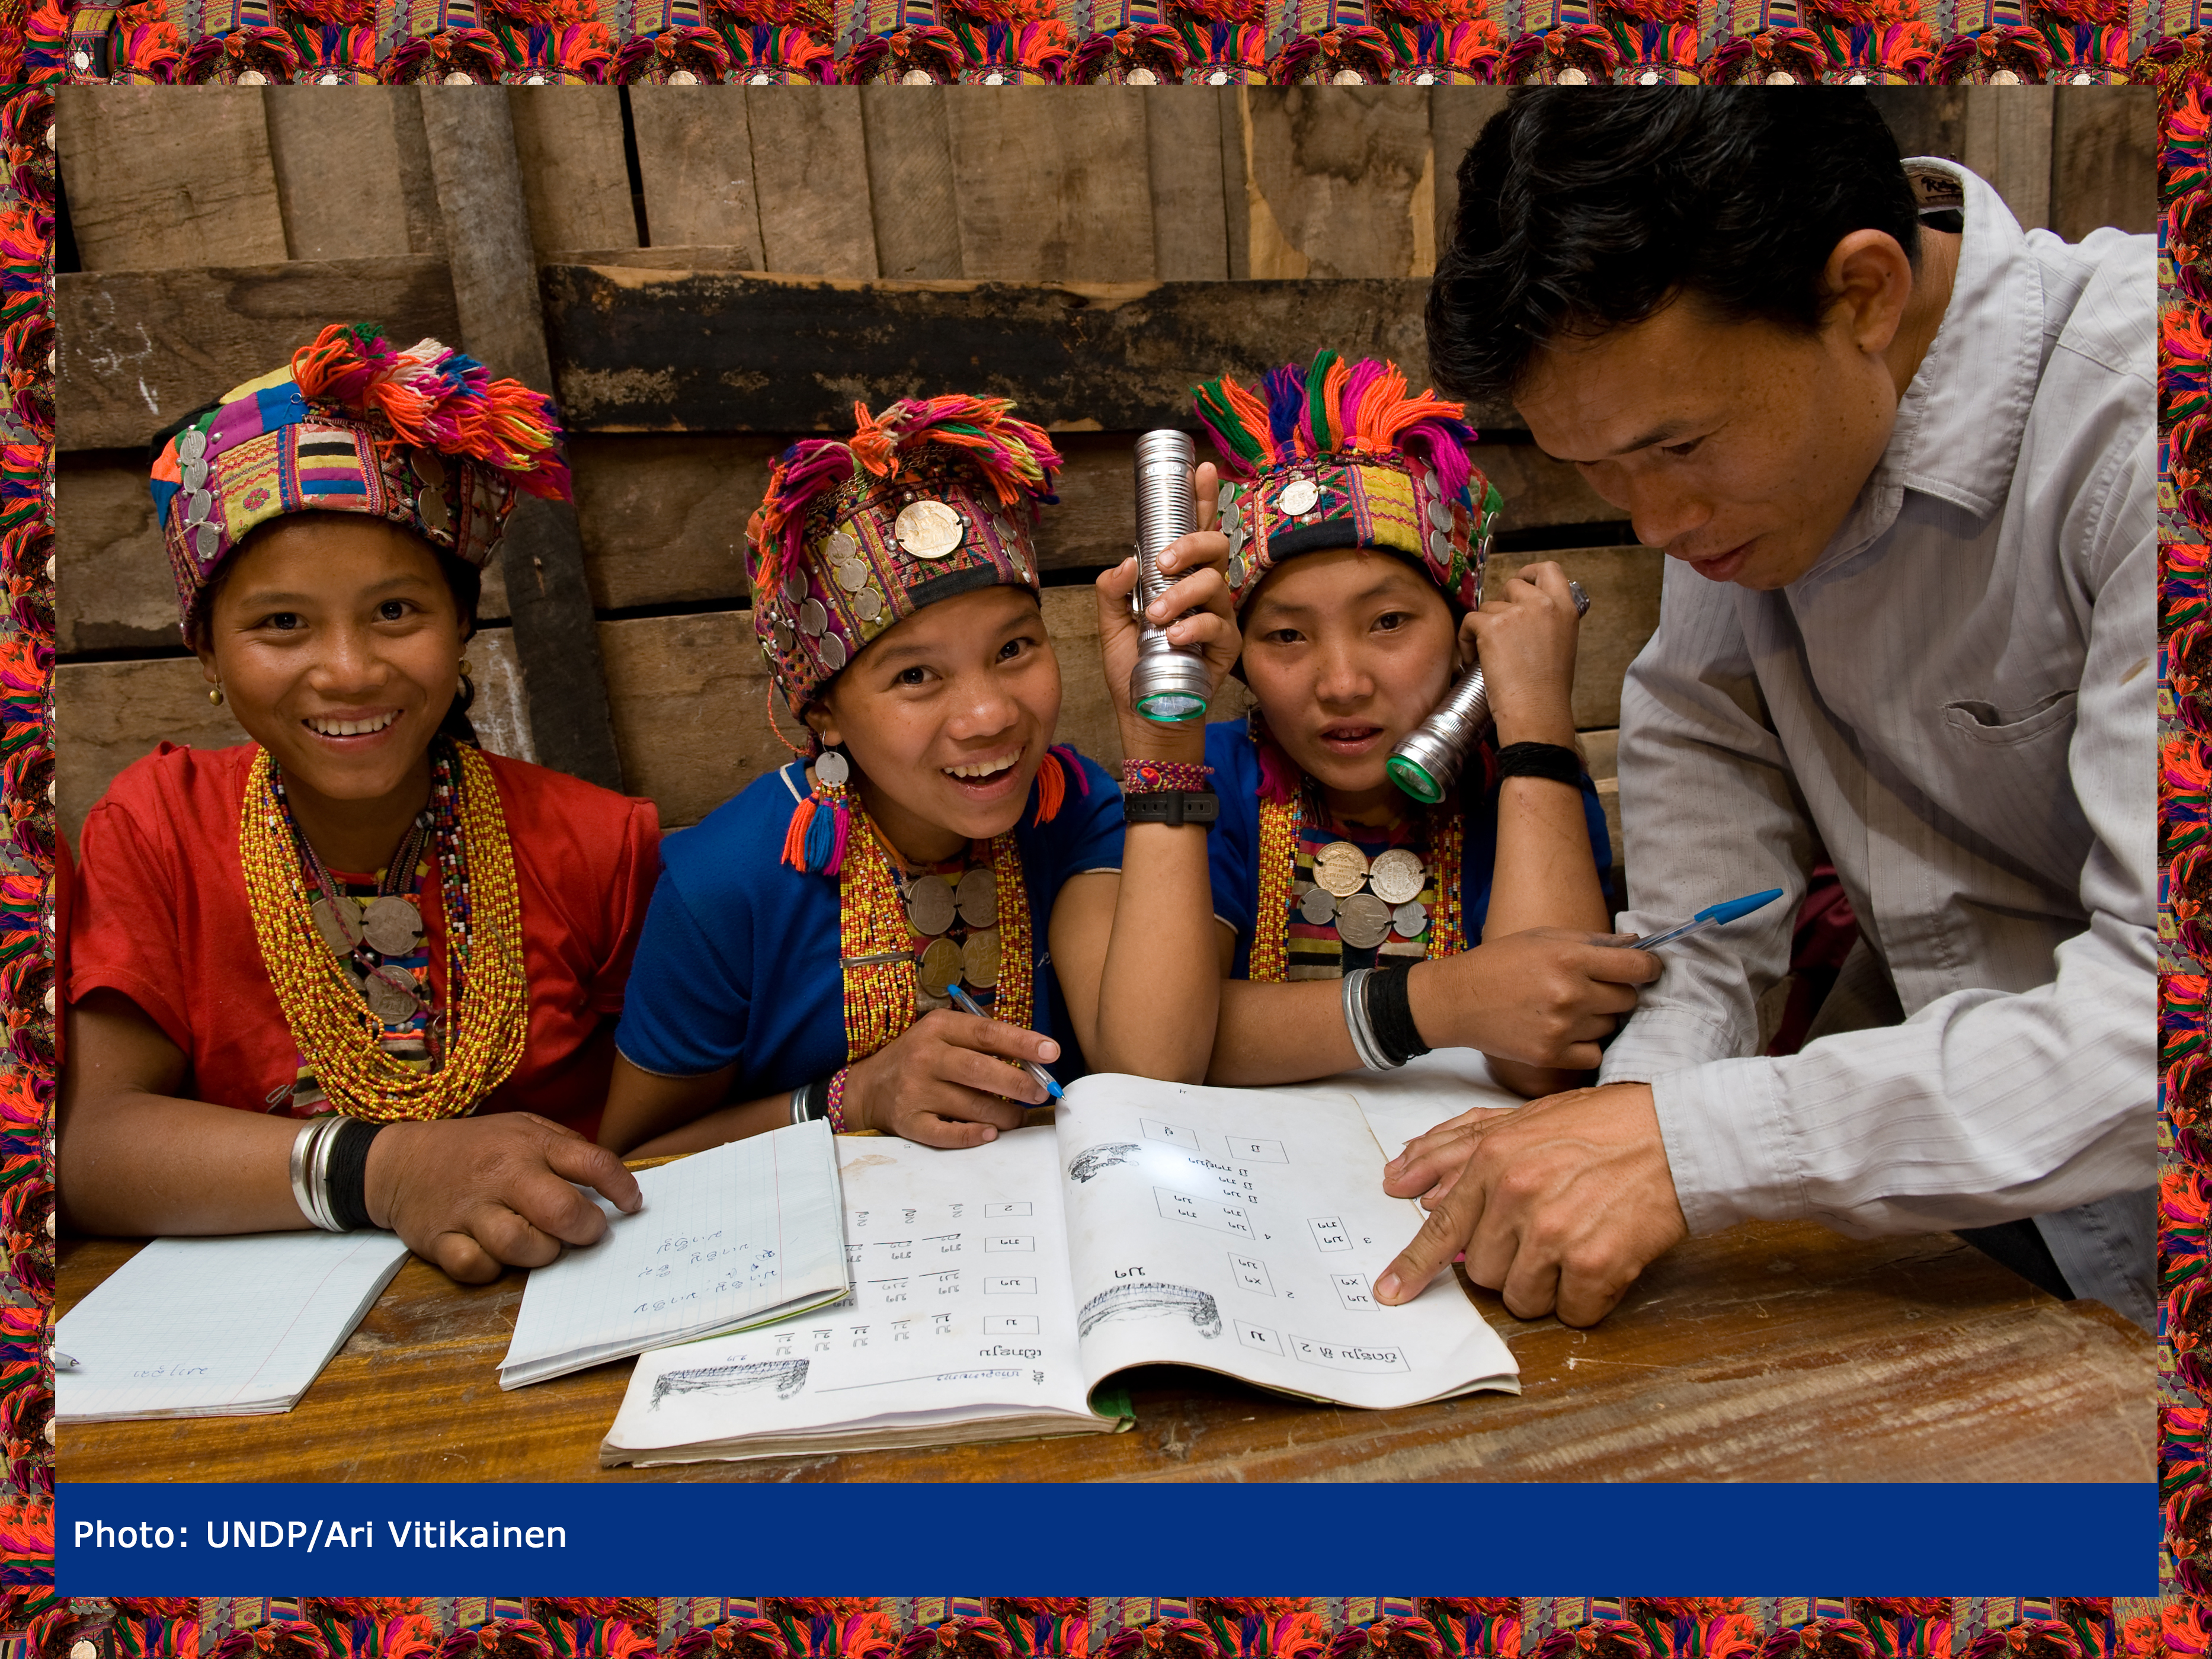 In a remote village in Lao People's Democratic Republic, young women study the national language.